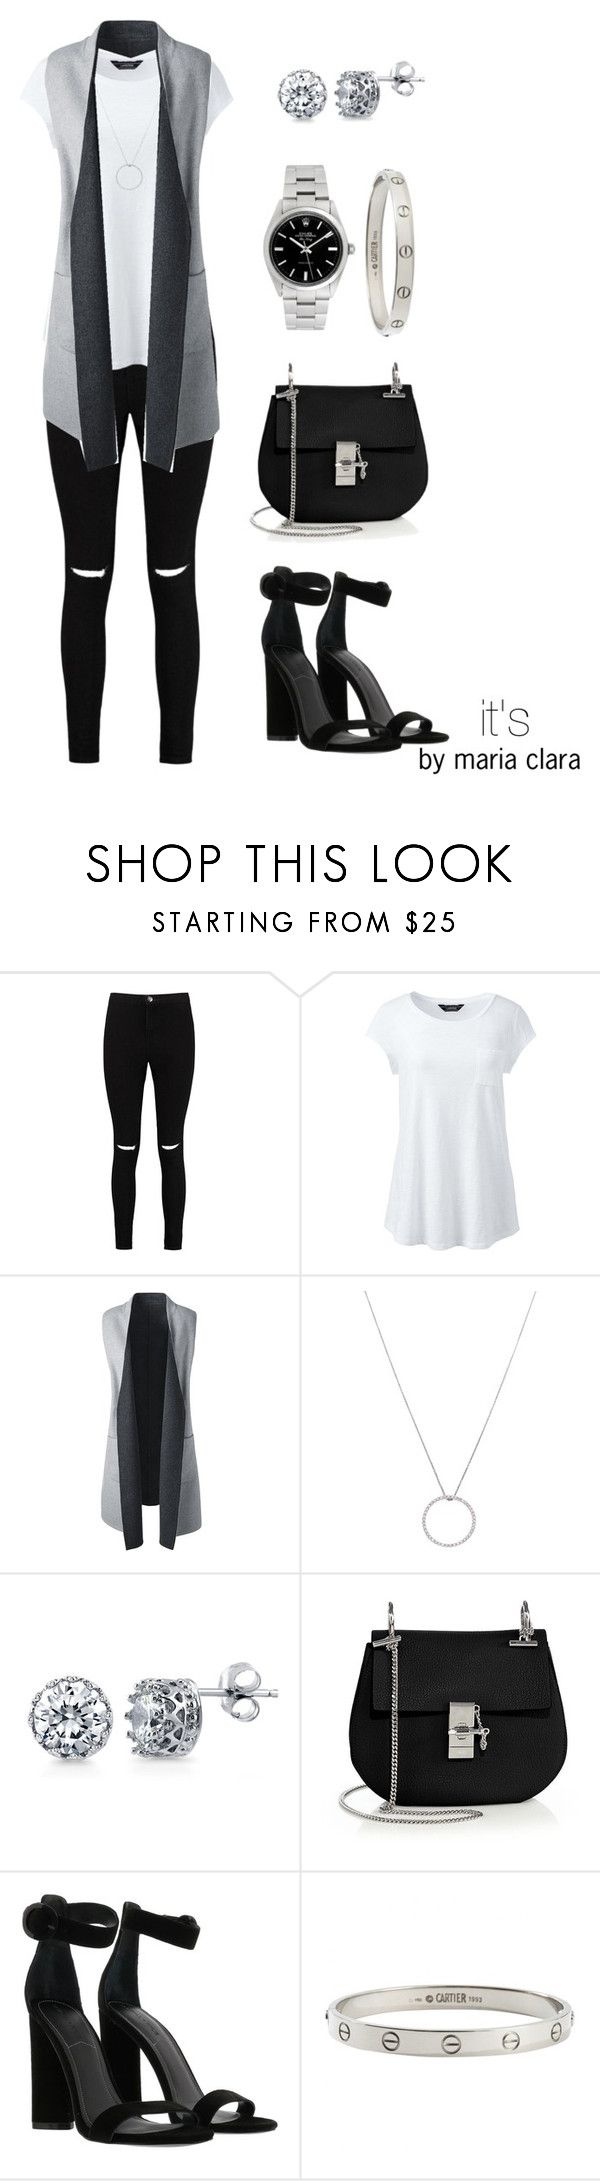 """""""It's by Maria Clara/ colete/ fashion/ look/ women's fashion"""" by itsbymariaclara ❤ liked on Polyvore featuring Boohoo, Lands' End, Roberto Coin, BERRICLE, Chloé, Kendall + Kylie, Cartier, Rolex and plus size clothing"""